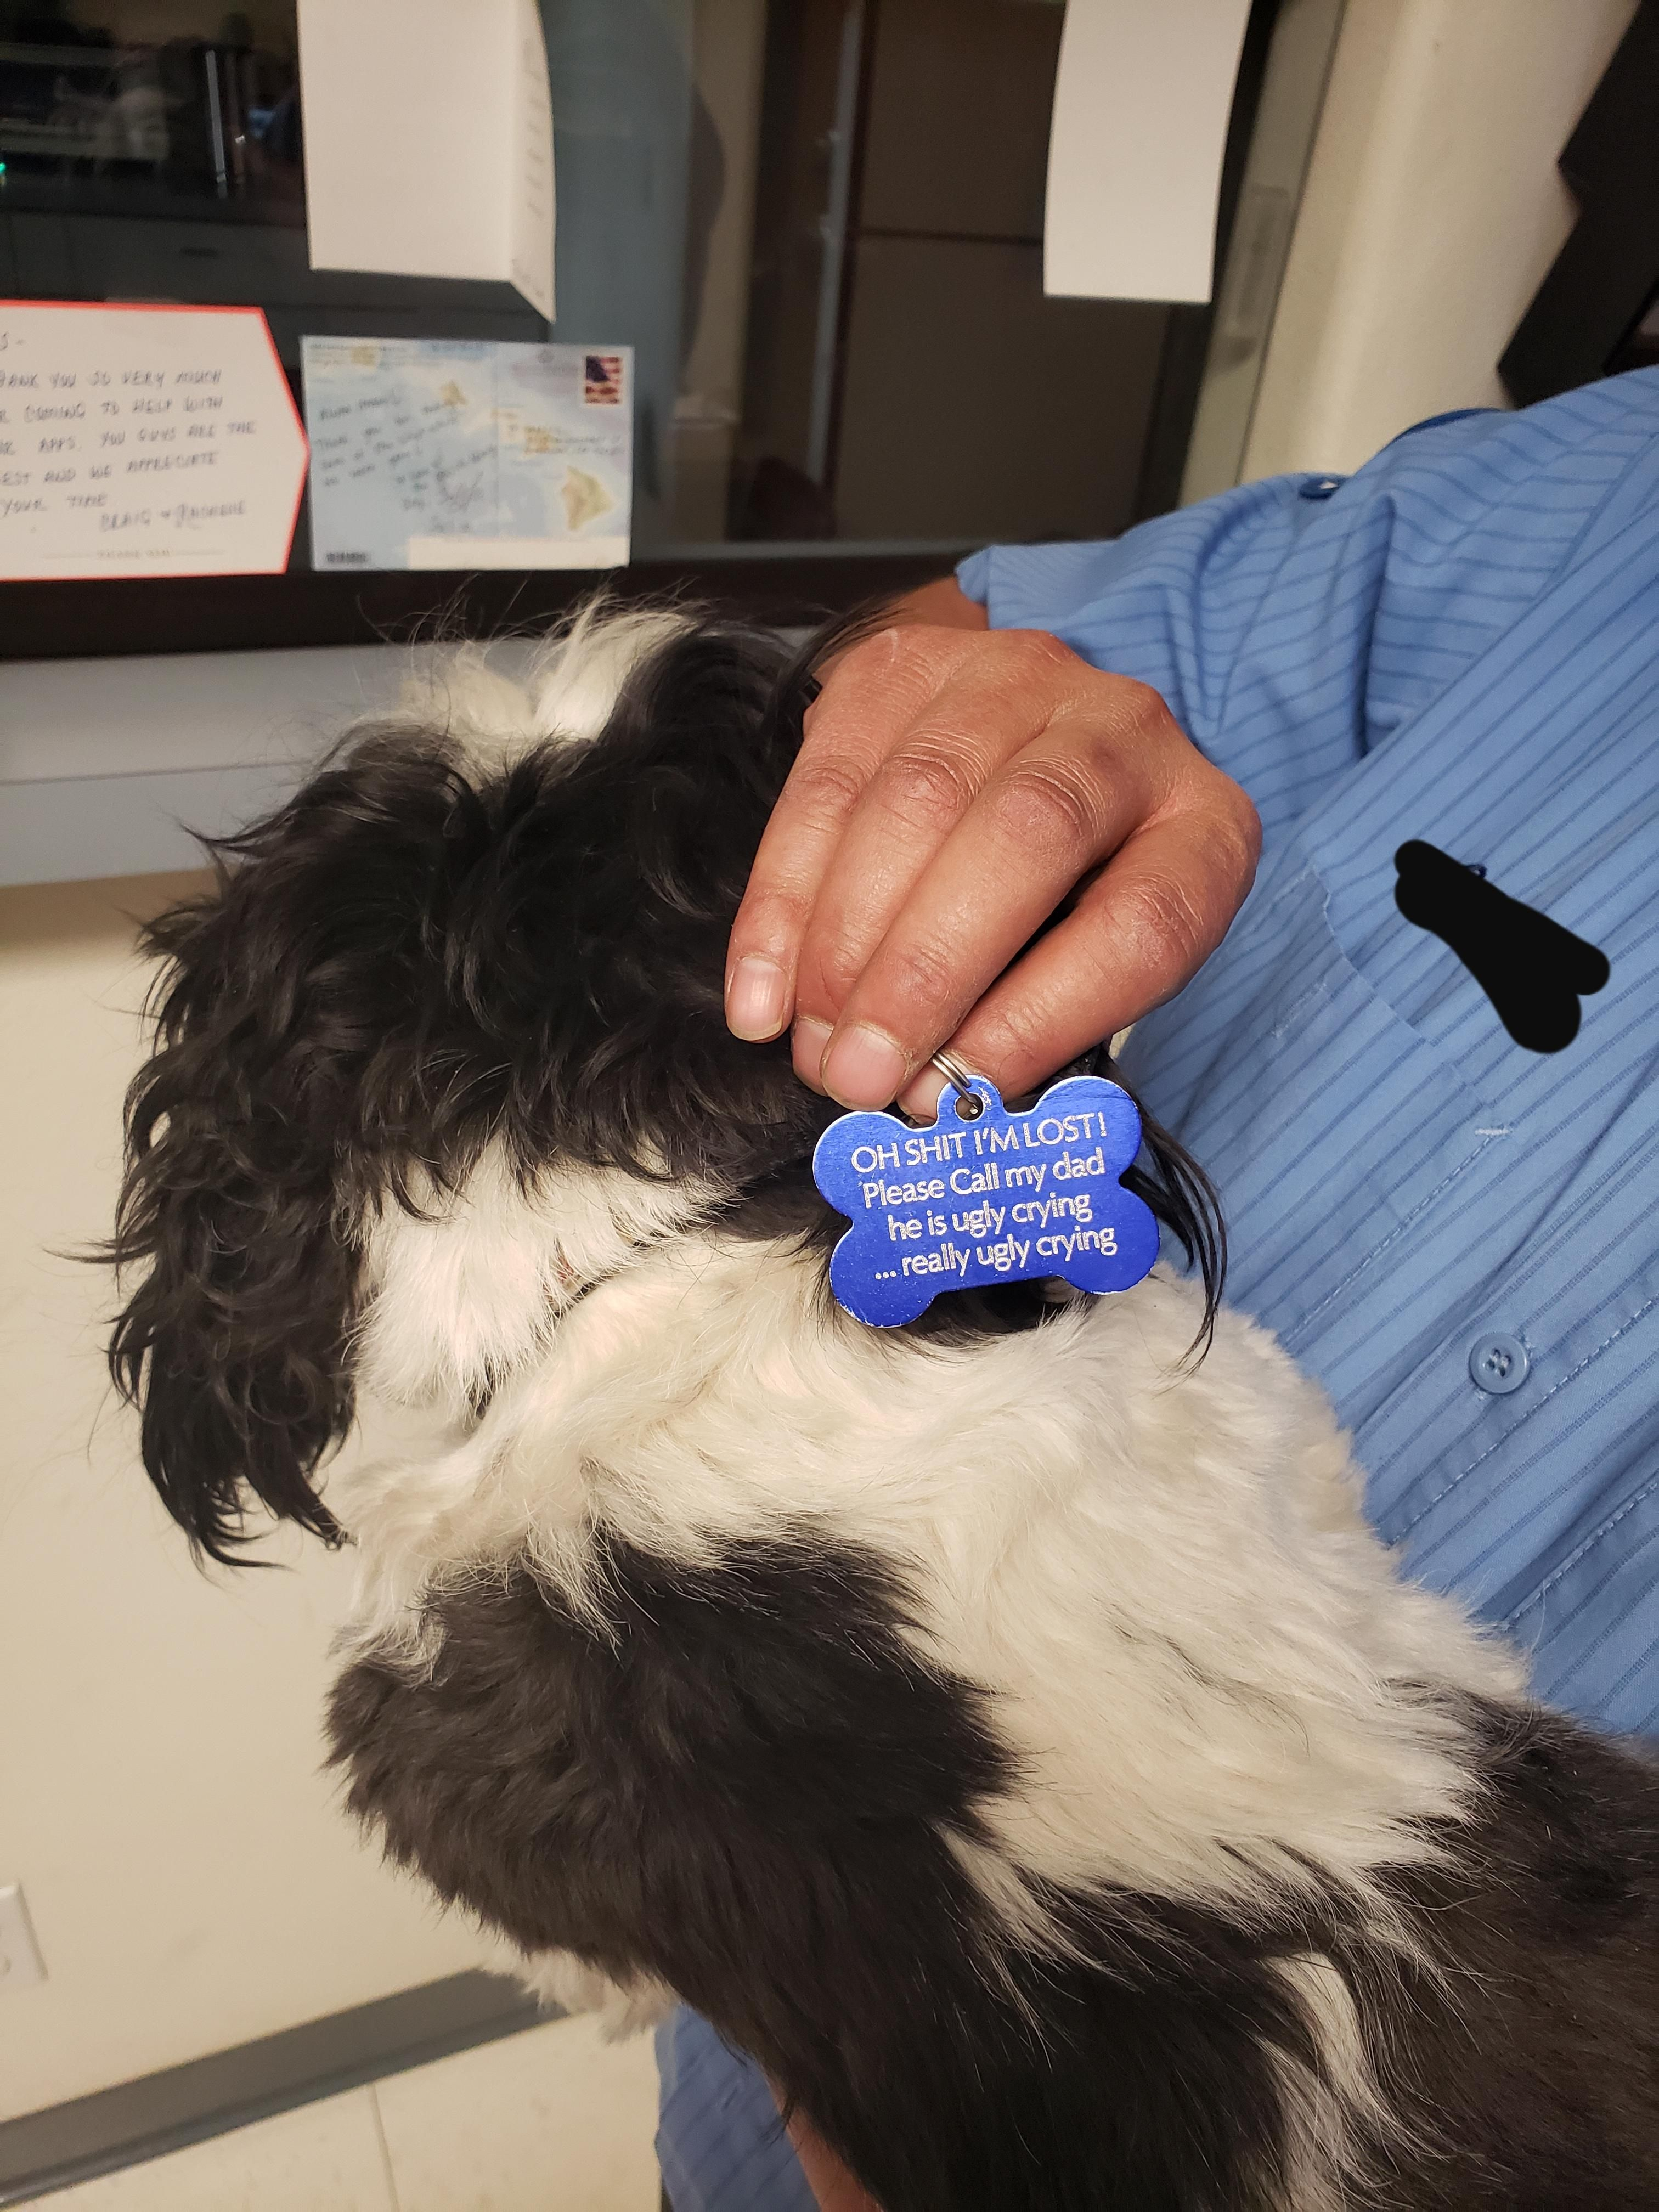 My friend is a pretty tough man, this is his baby's dog tag!